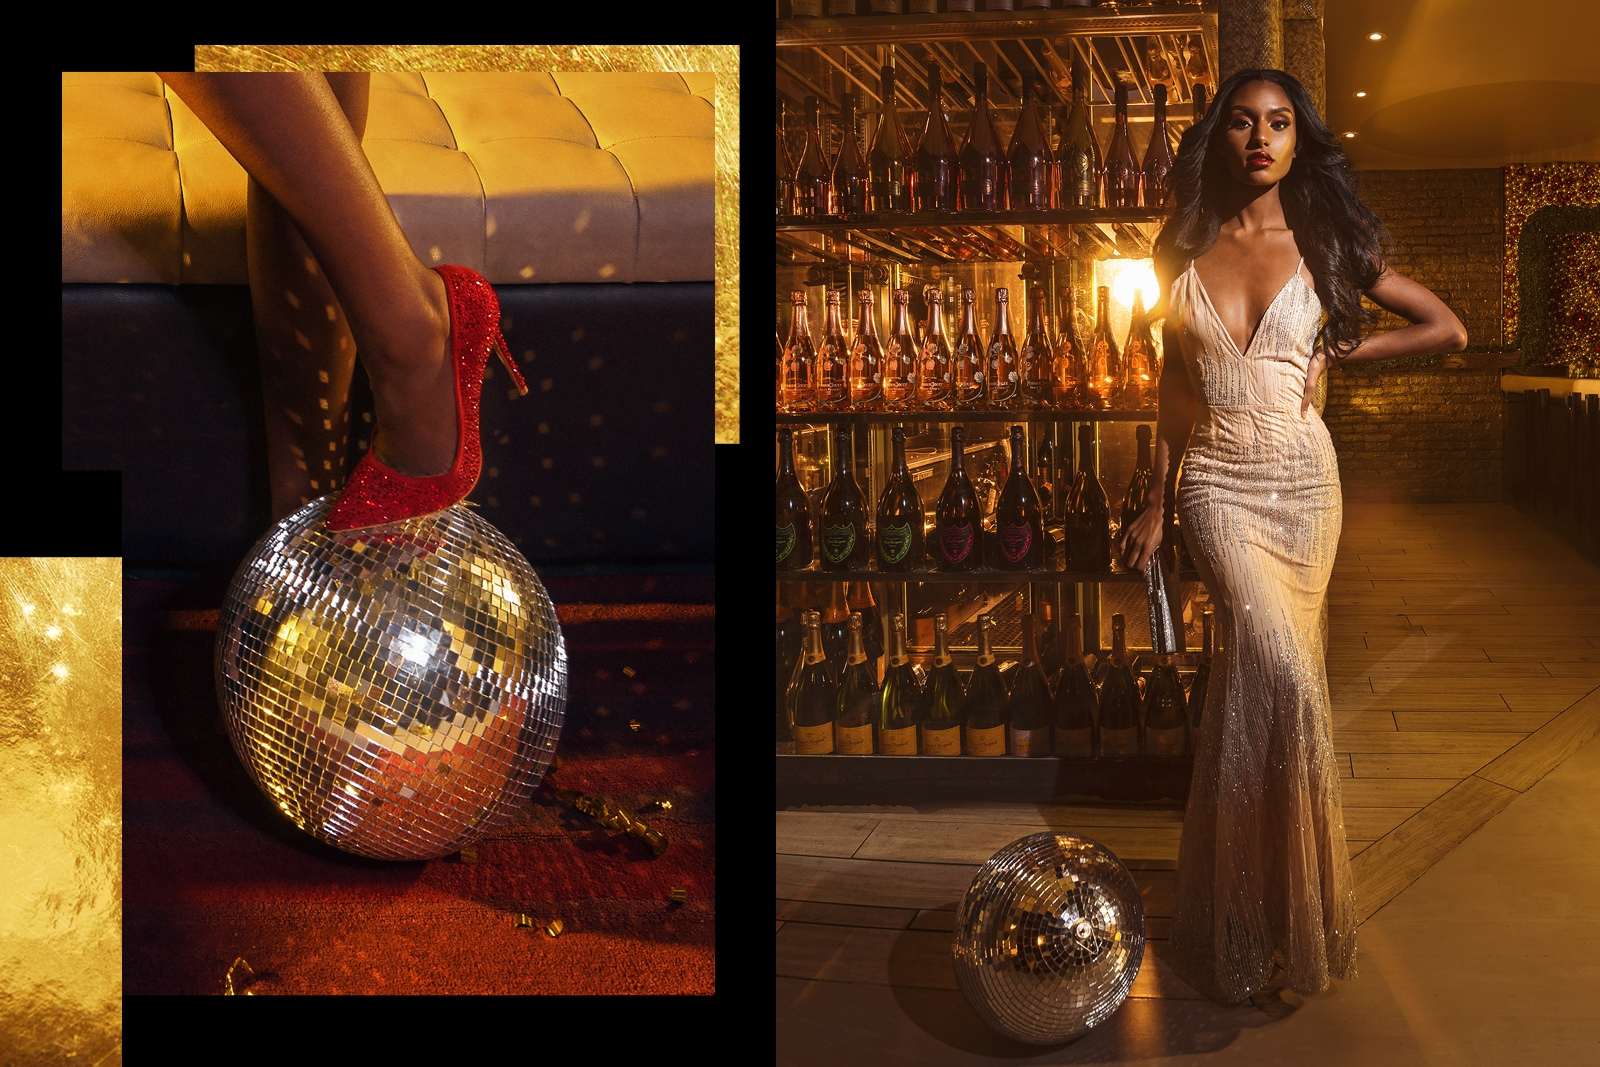 discoball shoe and model by bottles